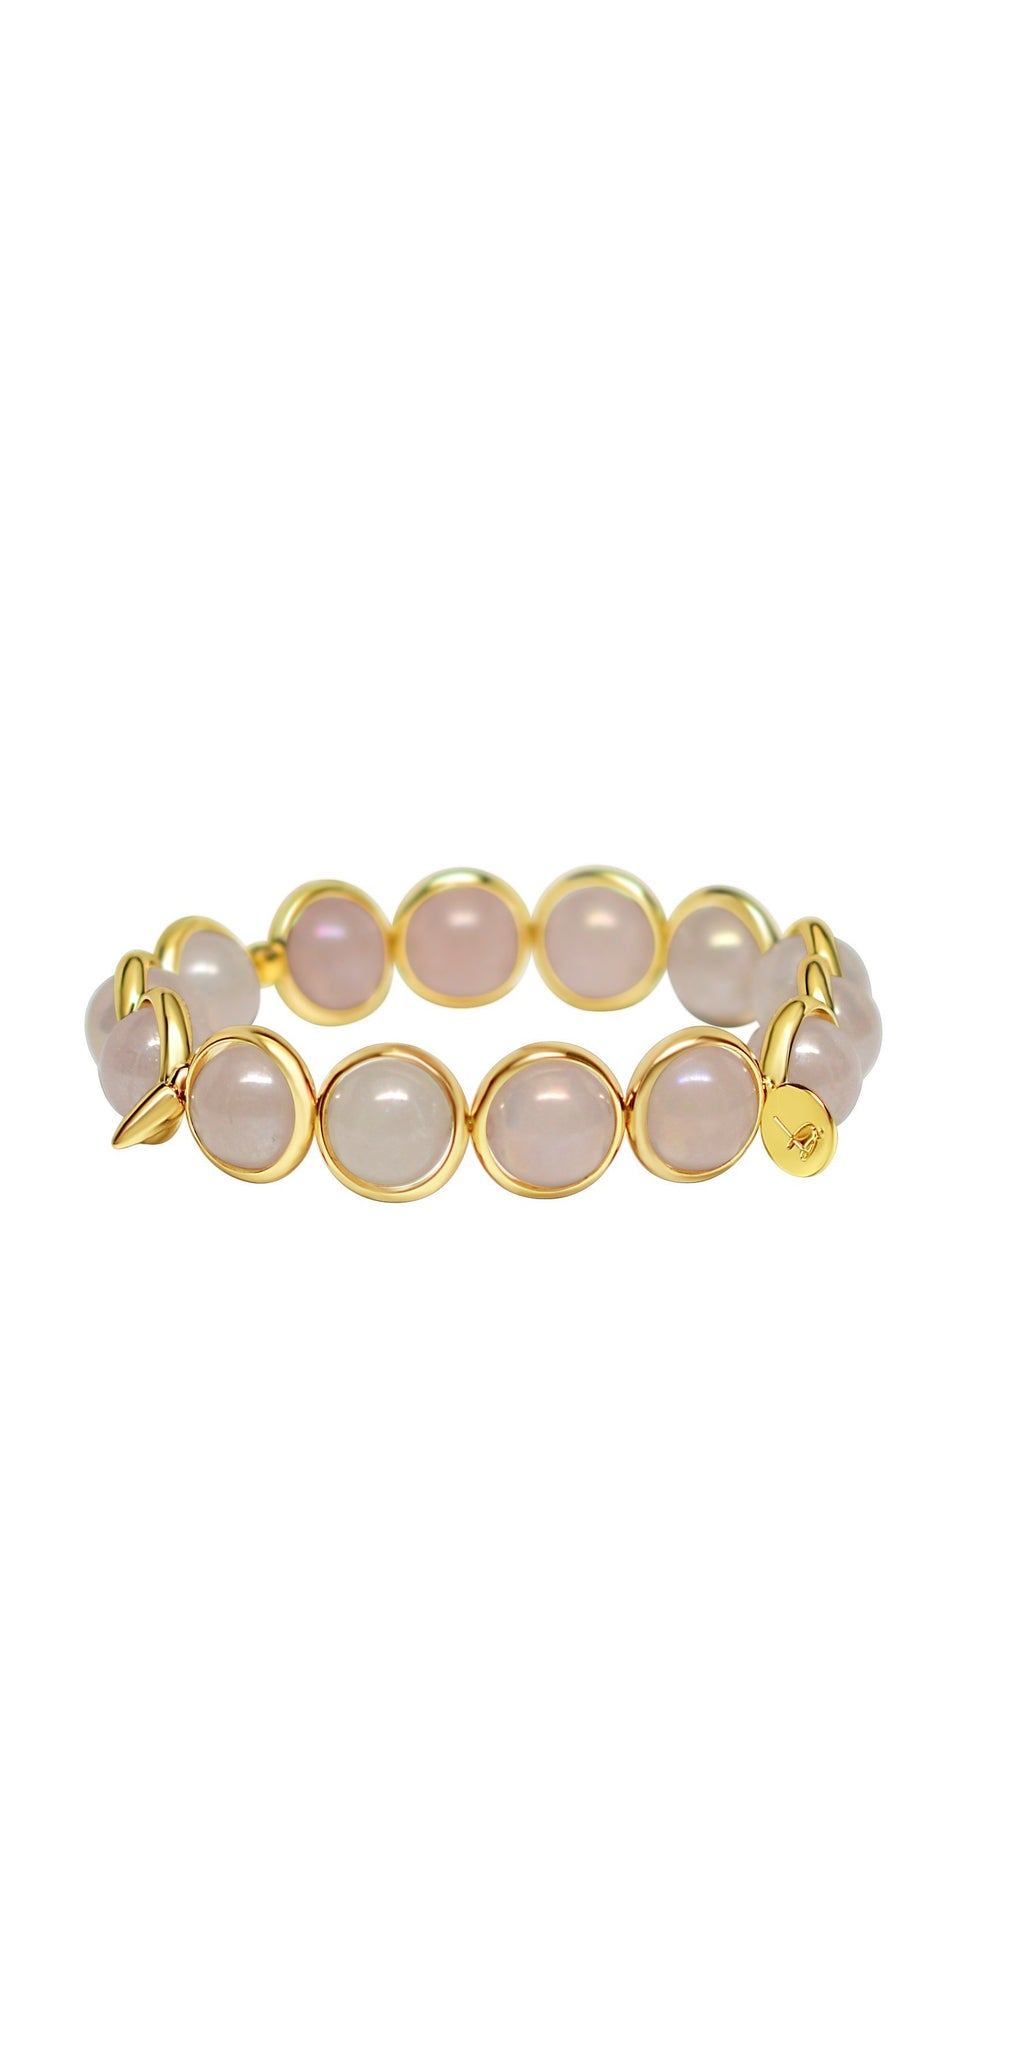 Rose Quartz Coated Bead Bracelet - Gold-Sea Biscuit Del Mar